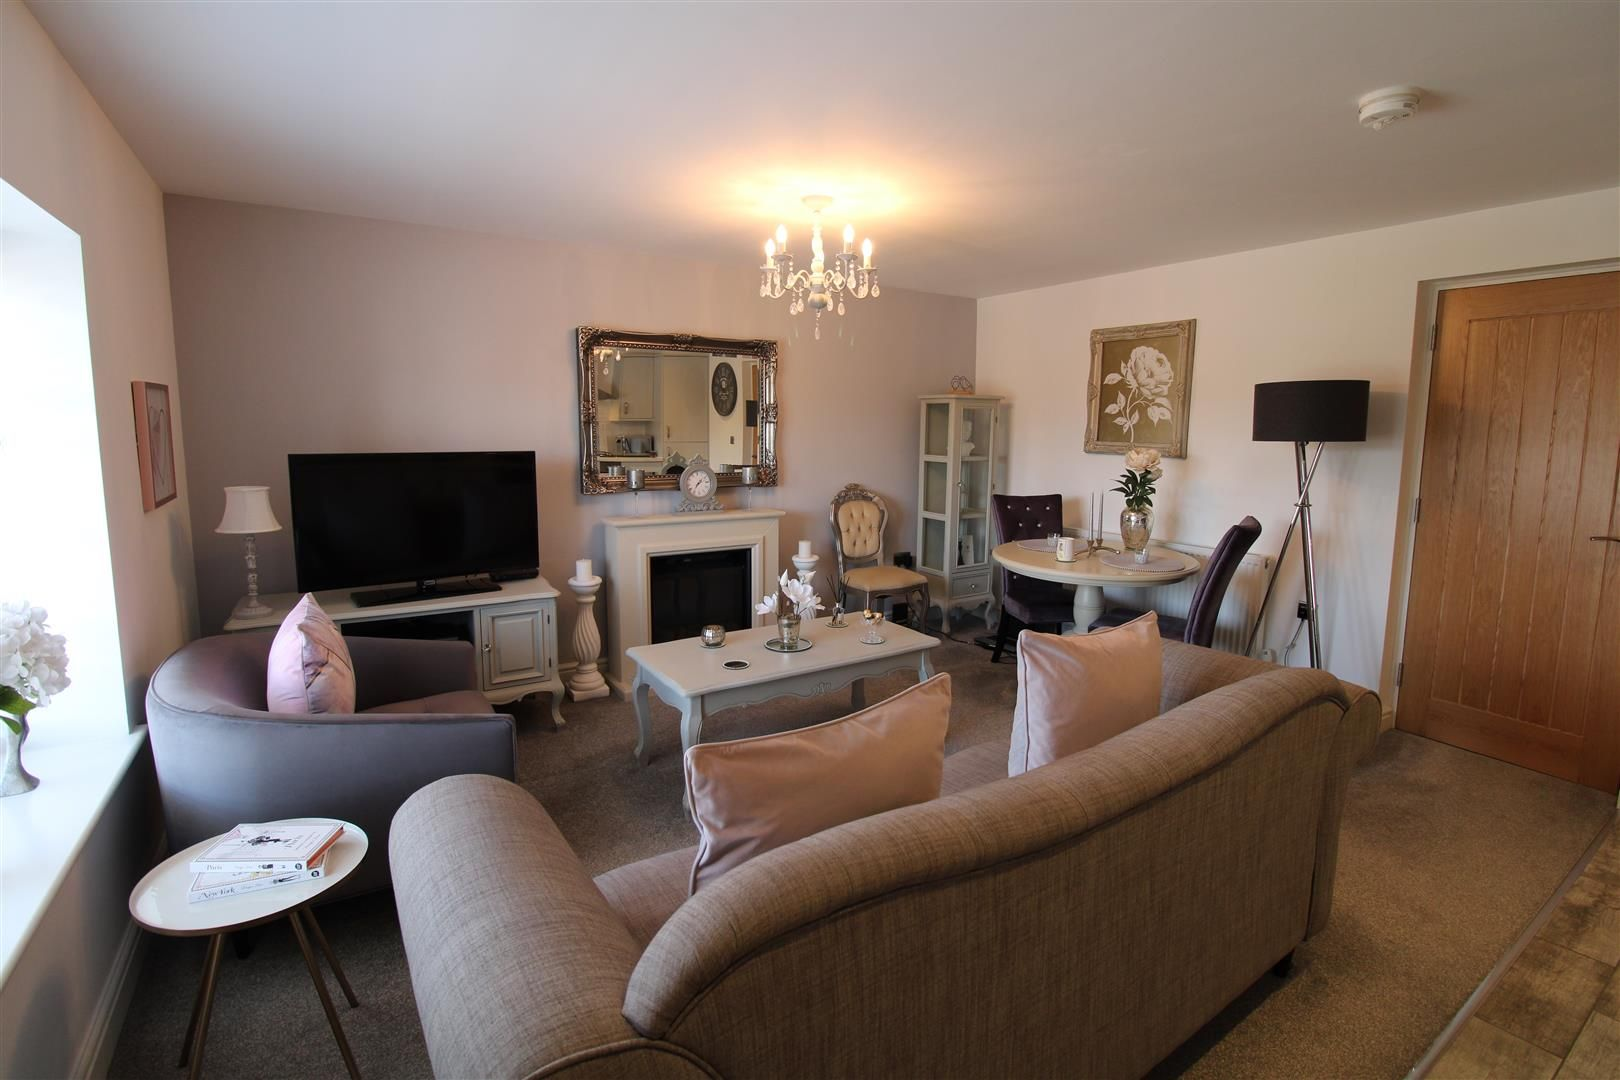 2 bed apartment for sale in Swindon 5